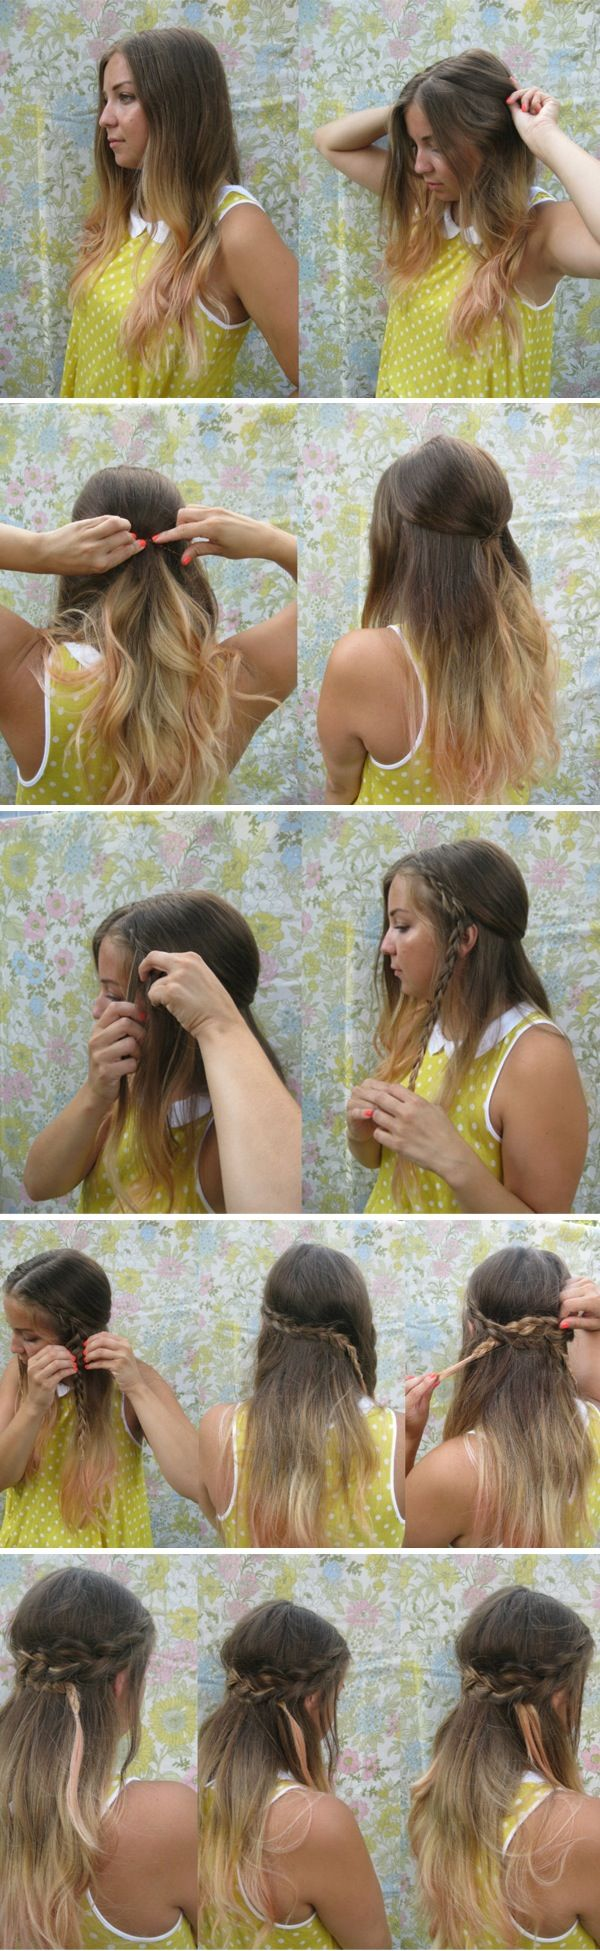 Cute!: Braids Hairstyles, Hair Colors, Braids Bands, Long Hair, Hair Makeup, Hair Style, Summer Braids, Wraps Around Braids, Crowns Braids